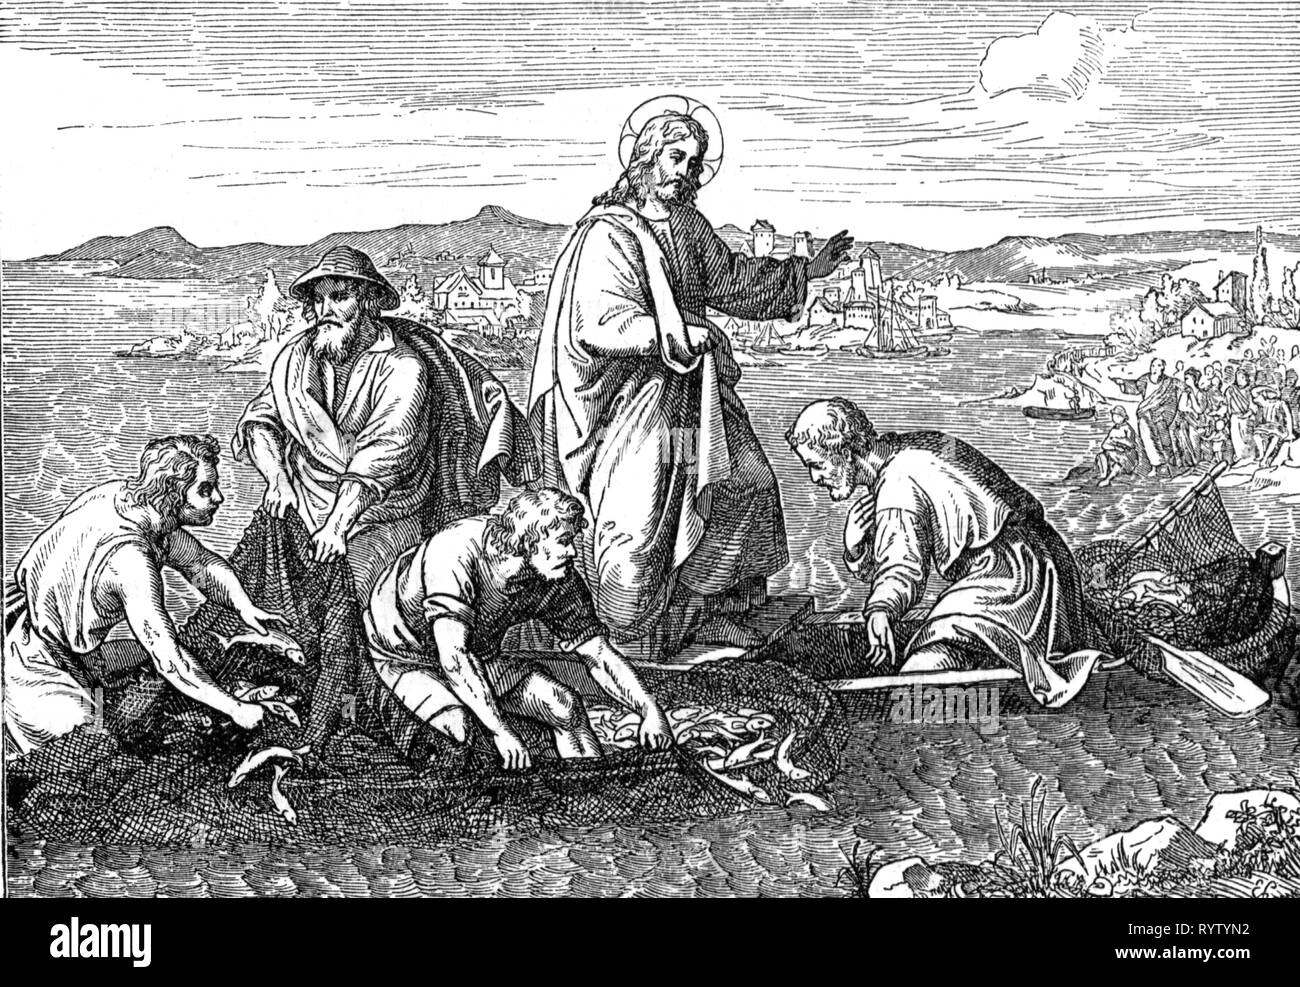 religion, Christianity, Jesus Christ, scenes of his life, the miraculous catch of fish, wood engraving, mid 19th century, graphic, graphics, New Testament, lake, lakes, Sea of Galilee, fishing boat, fishing boats, boat, boats, fisherman, fisher, fishermen, fish, standing, miracle, miracles, wonder, wonders, Peter, Messiah, Saviour, Redeemer, fishing, religion, religions, scenes, scene, life, lives, haul, hauls, historic, historical, man, men, male, people, Additional-Rights-Clearance-Info-Not-Available - Stock Image